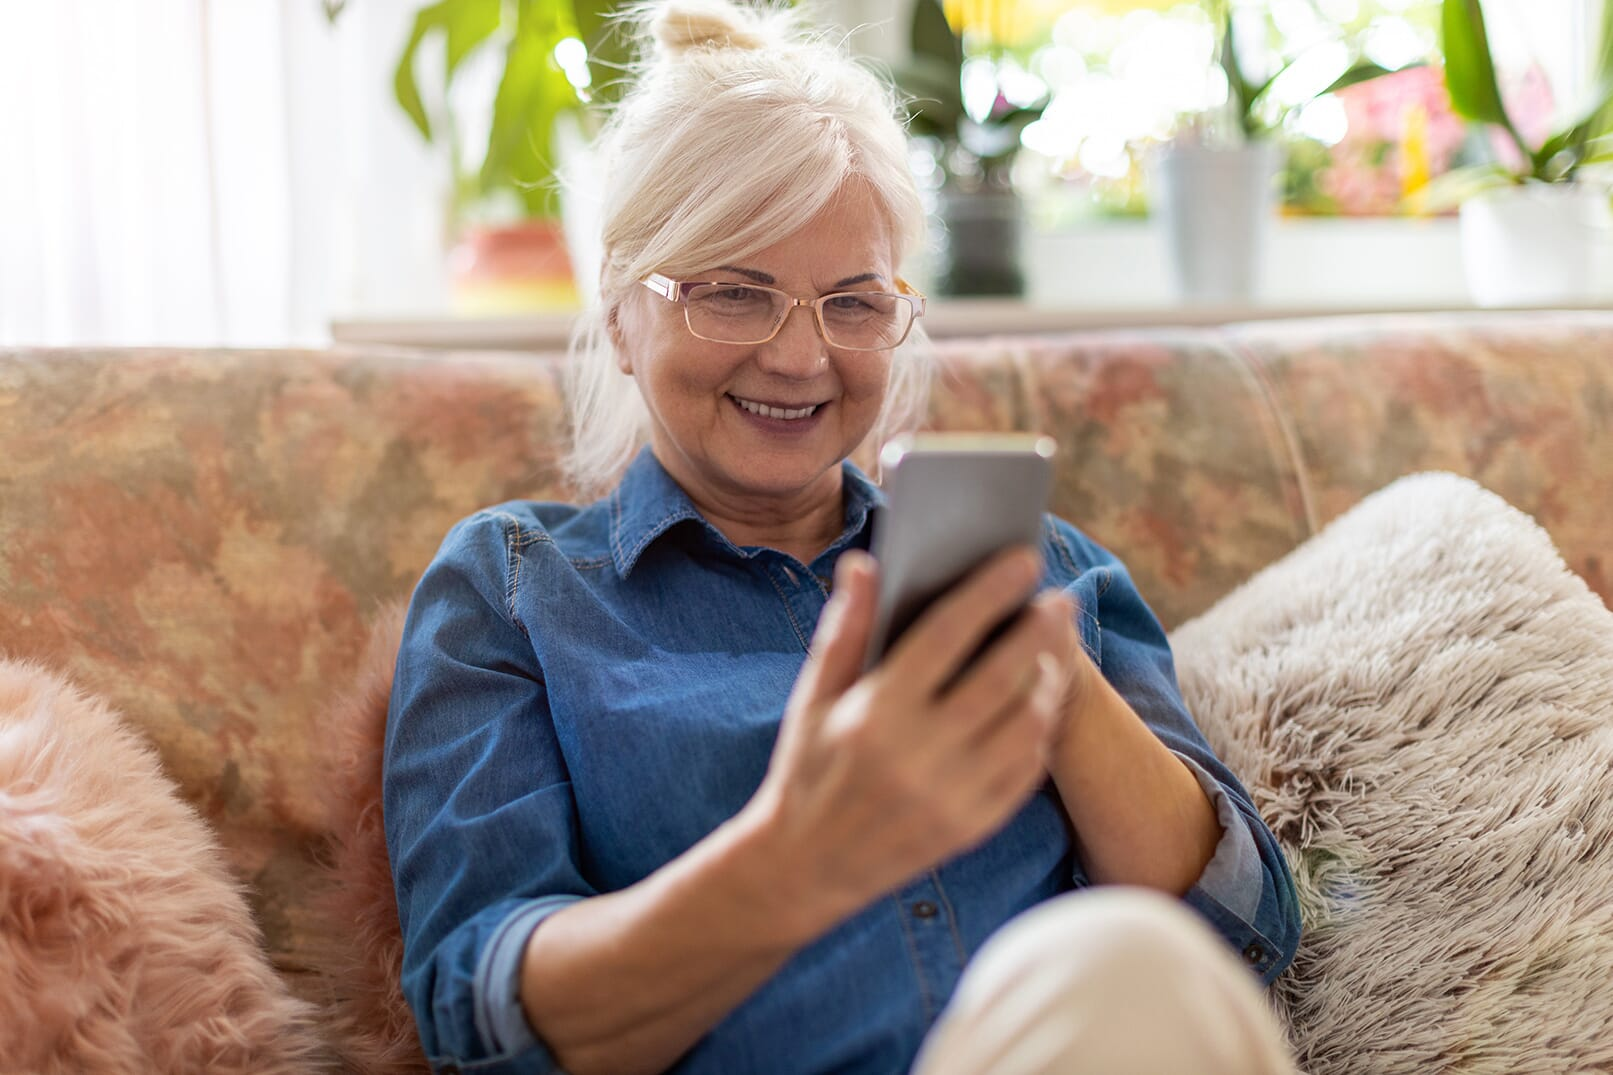 Smiling woman using her phone